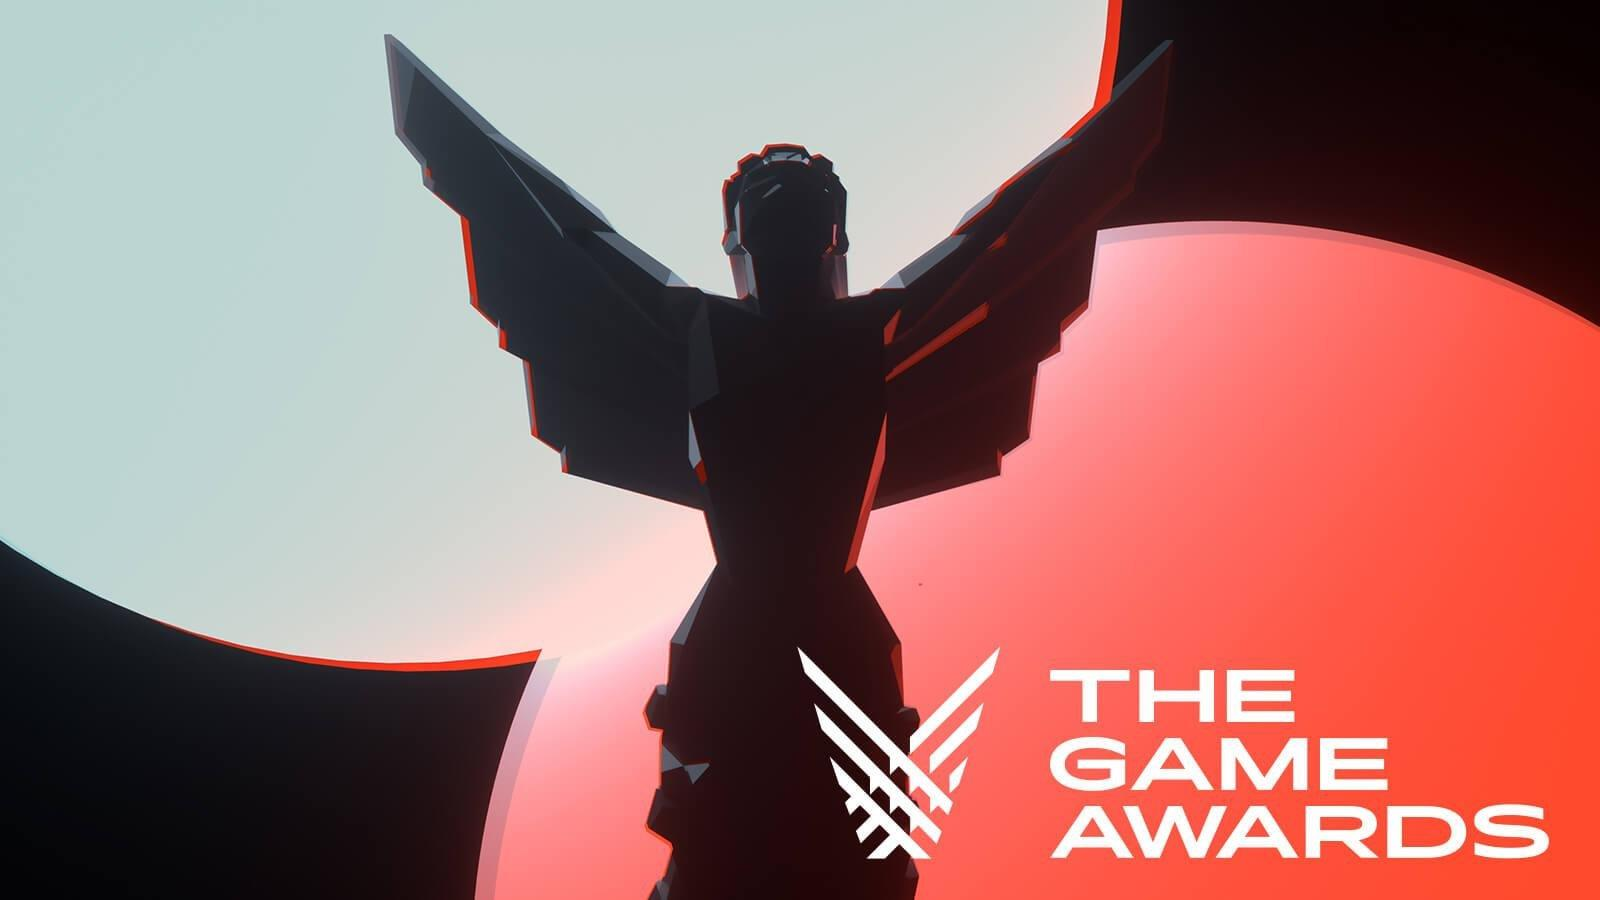 The Game Awards 2020: 250+ Full Sail Grads Credited on the Year's Biggest Games - Article image